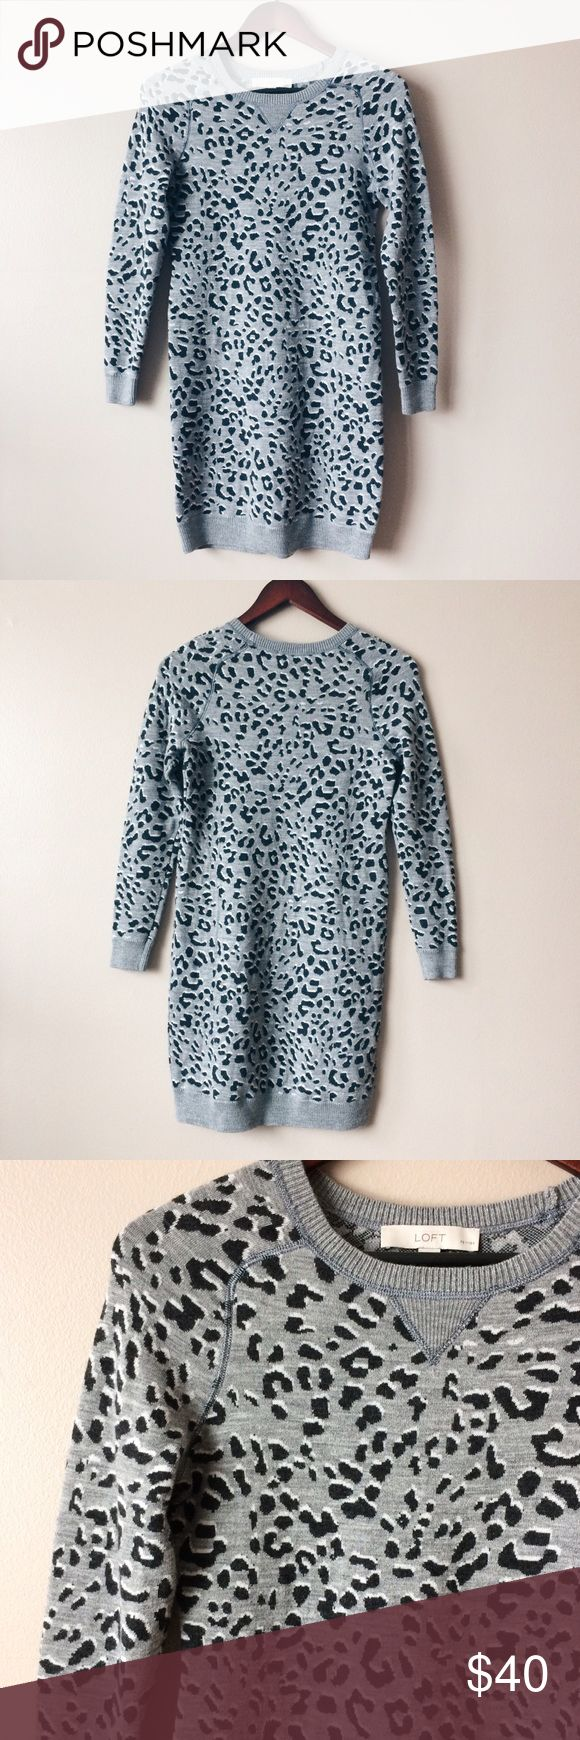 Animal print sweater dress LOFT animal print sweater dress Size XS petite  -Material: 40 acrylic, 30 wool, 30 polyester  -Form fitting  -Excellent condition LOFT Dresses